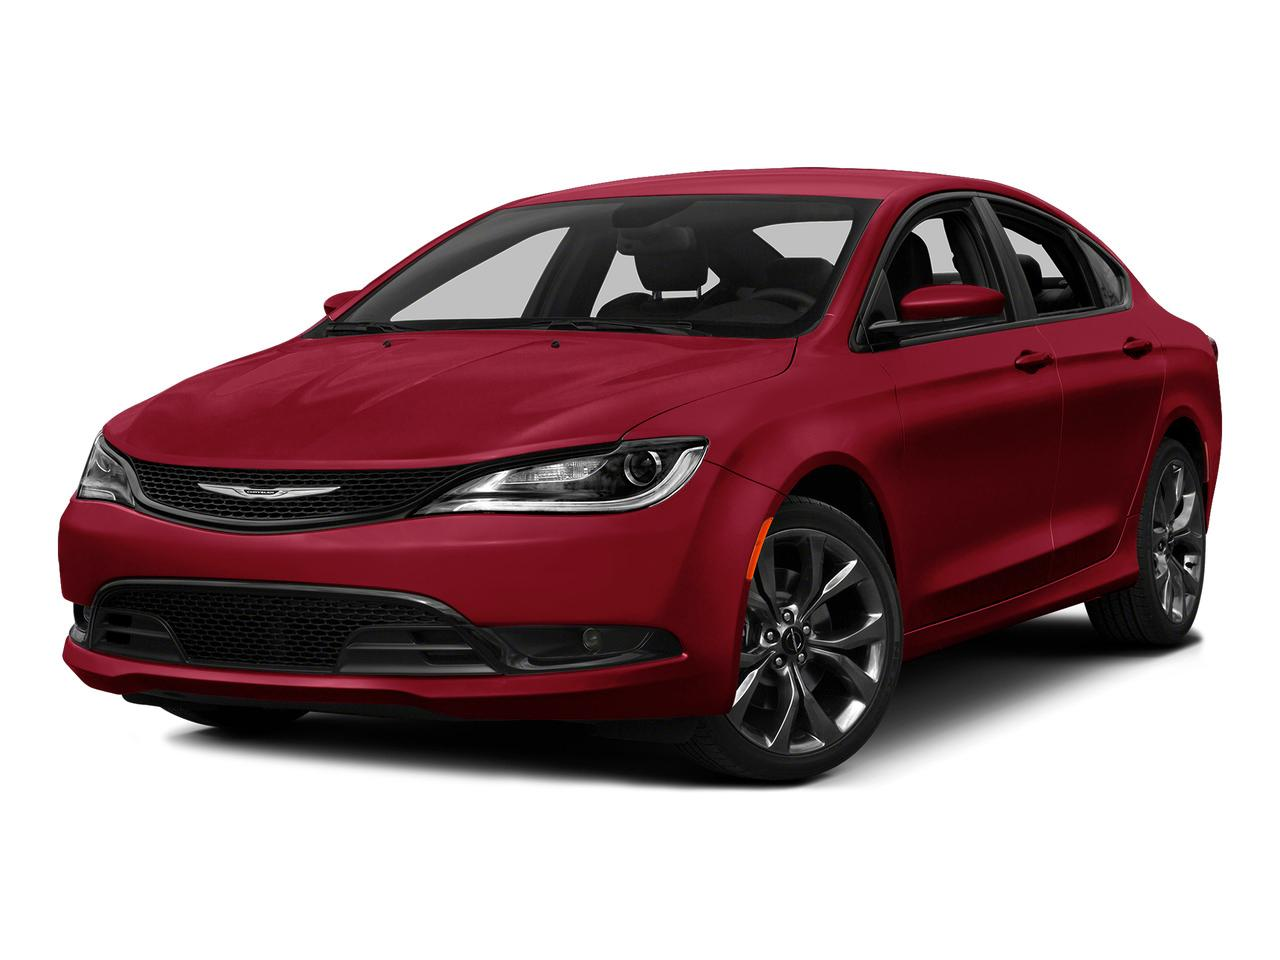 2015 Chrysler 200 Vehicle Photo in Lafayette, LA 70503